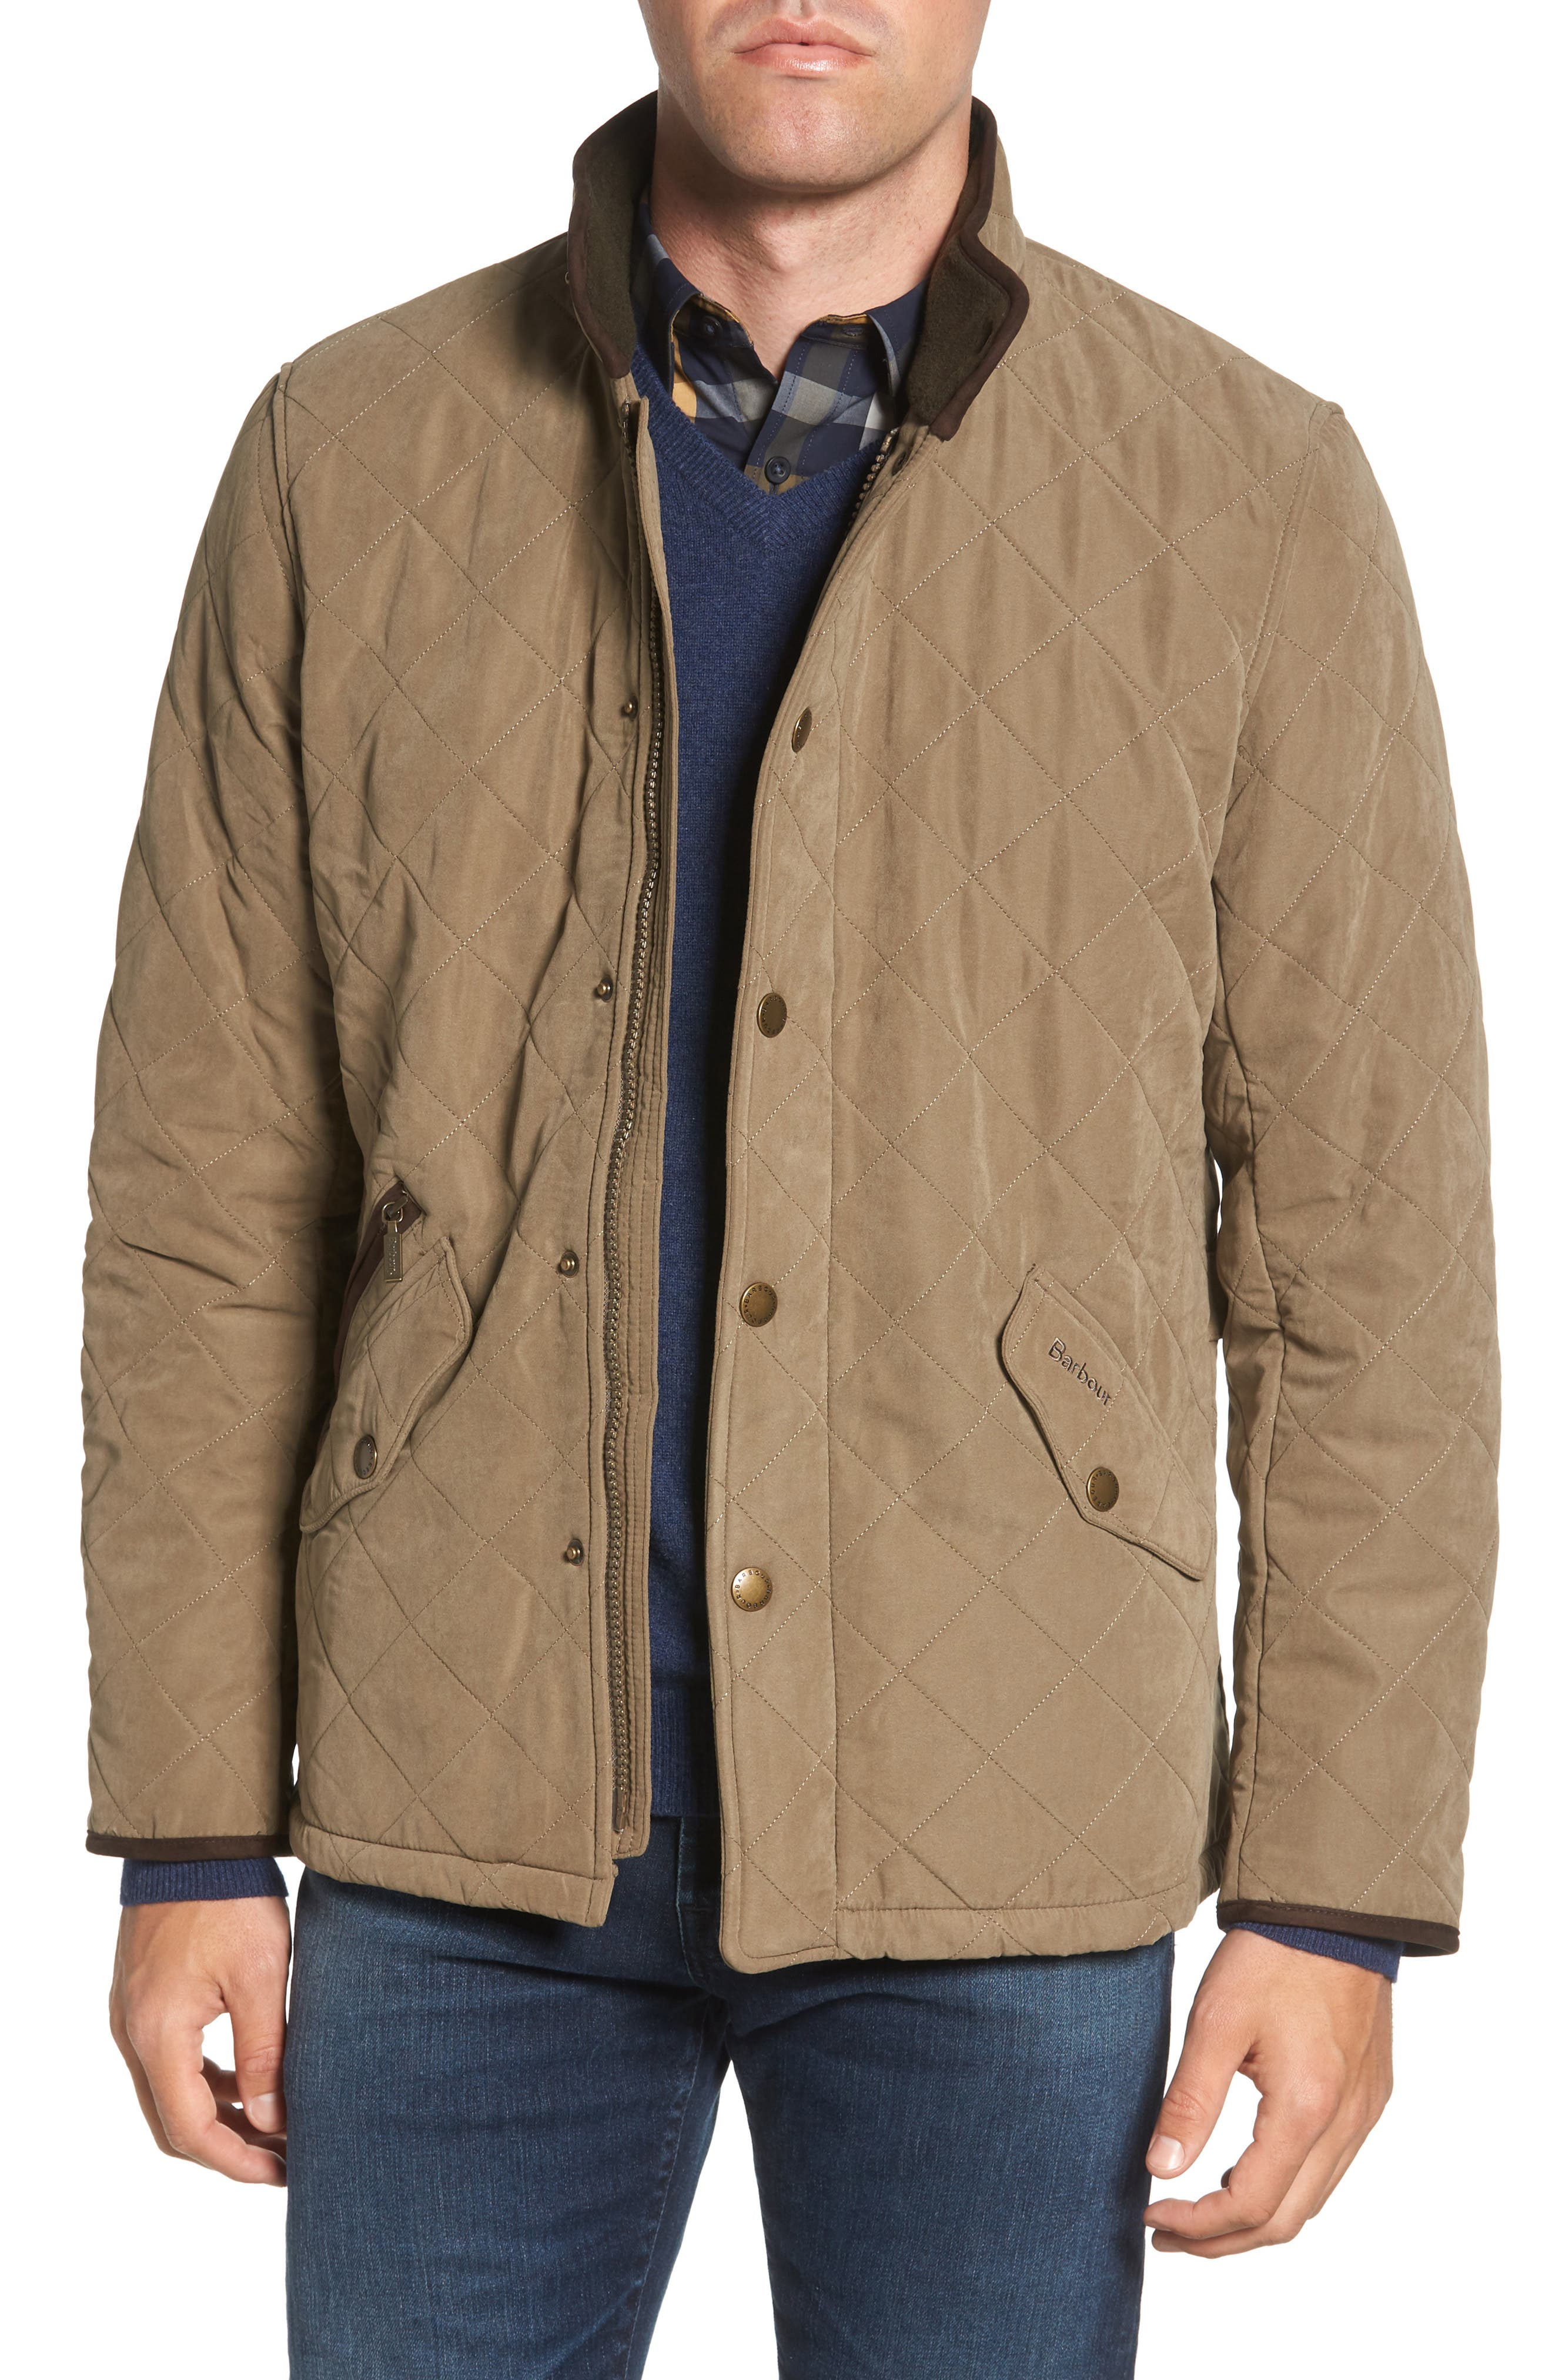 Bowden Quilted Jacket,                         Main,                         color, LIGHT OLIVE